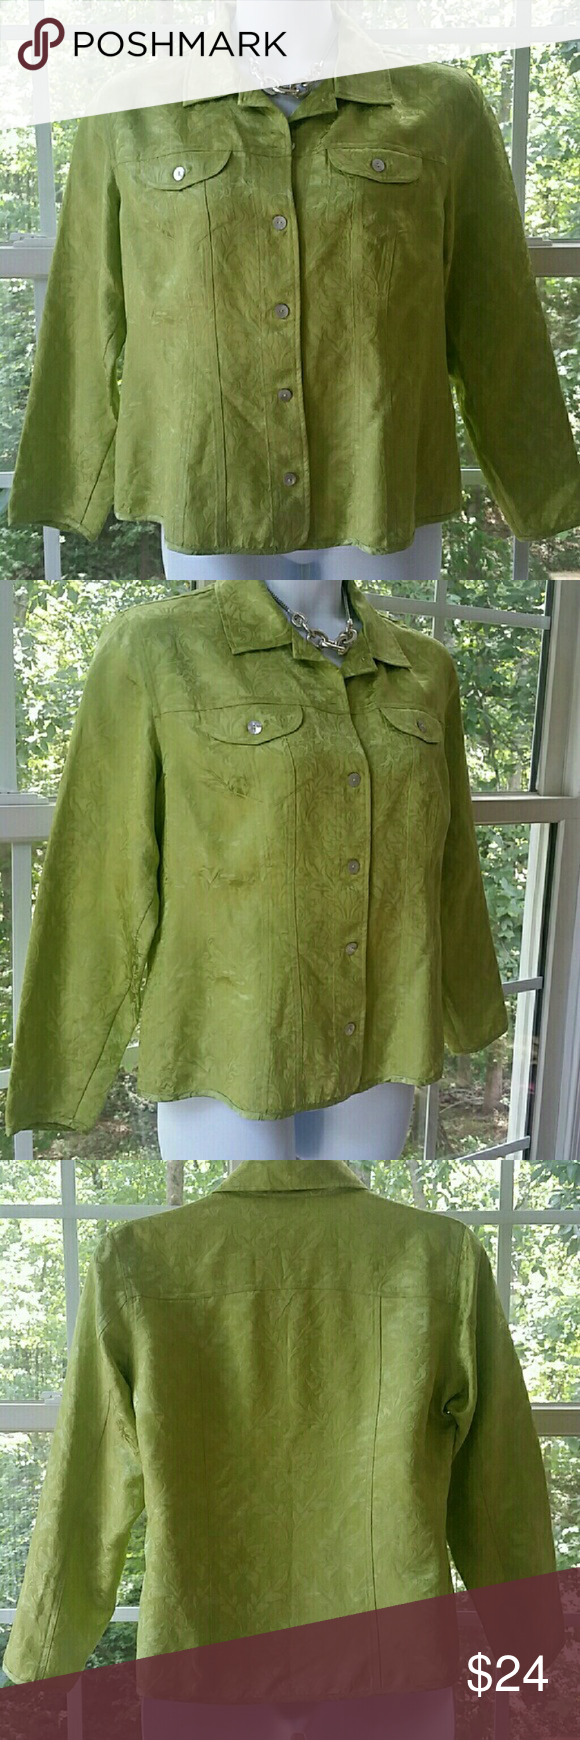 🆕Chico's Chartreuse Top or Light Jacket Size 2=L Elegant Chartreuse Green Top or Lightweight Jacket - Perfect for after work cocktails...Size 2 = L or size 12.. Chest 42 Waist 33 1/2 Hip 42...54% Rayon 15% Nylon 31% Silk - Machine Wash Cold - Gentle Cycle -Tumble Dry...Thank you for looking! Xoxoxo Chico's Tops Blouses